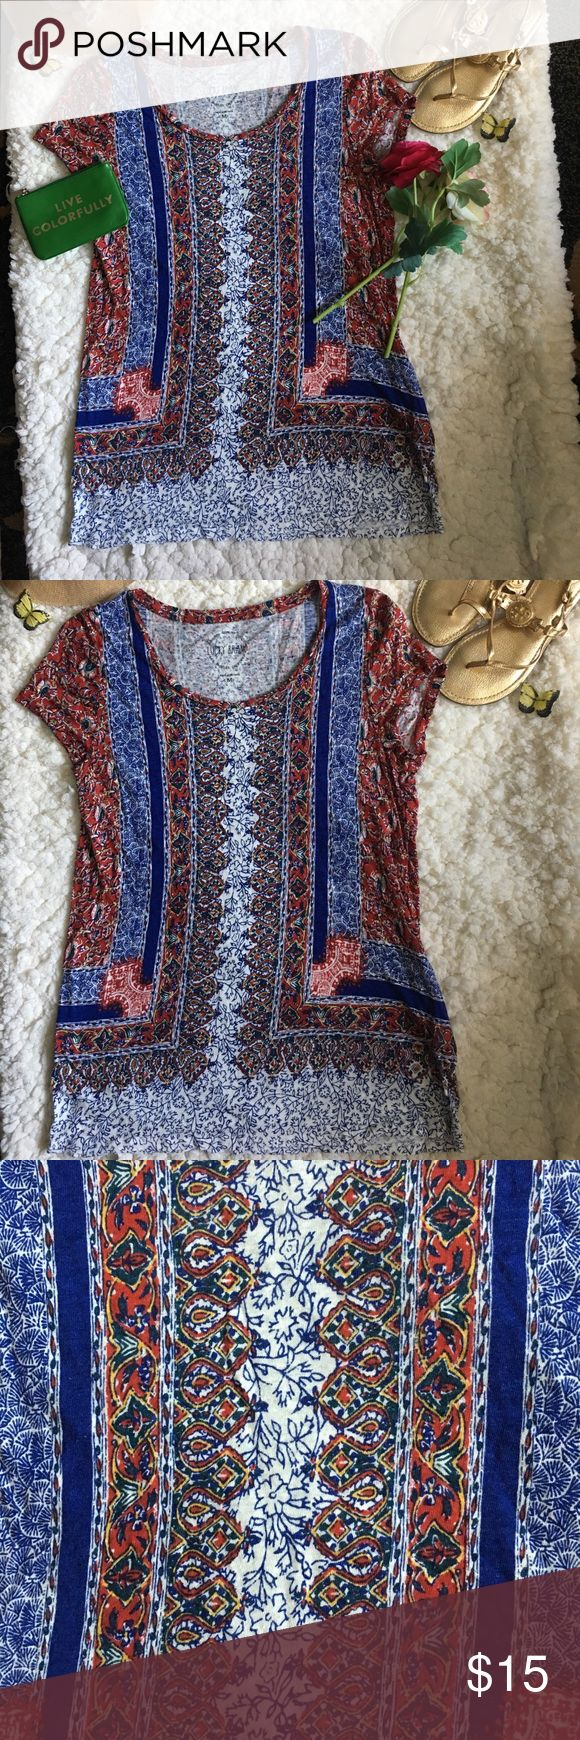 ❤Lucky Brand Top❤ ❤In great used condition Lucky Brand Top in size Medium❤️Shows minor signs of wear such as minor piling❤Please see all photos❤ Lucky Brand Tops